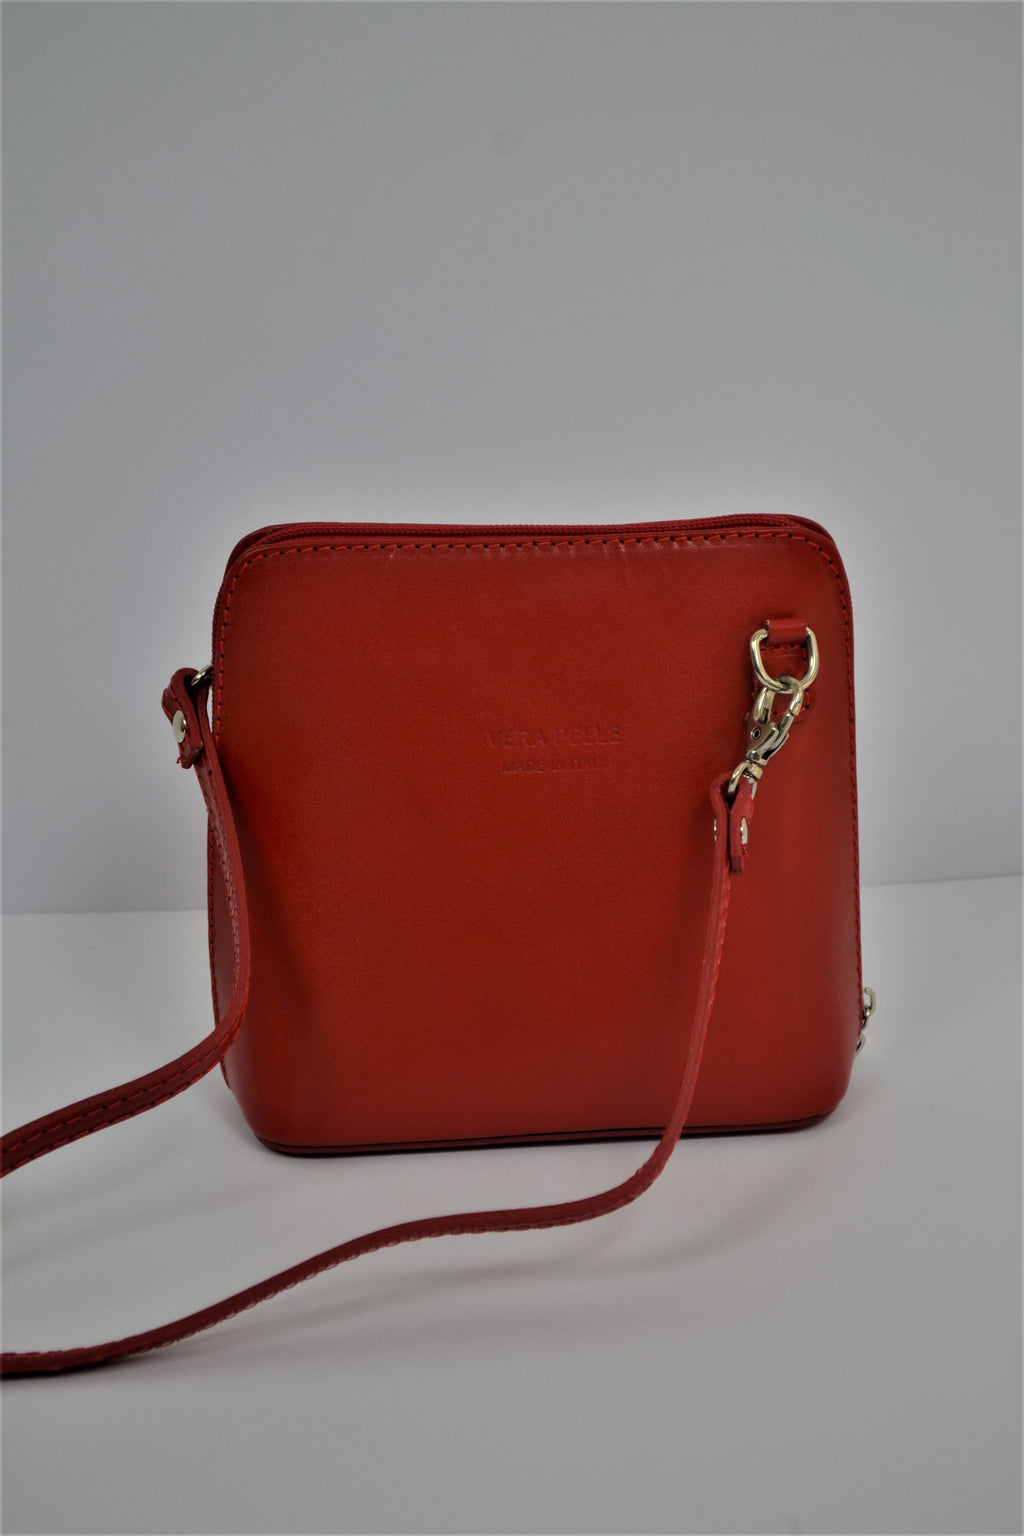 Husen Moda Red Leather Bag